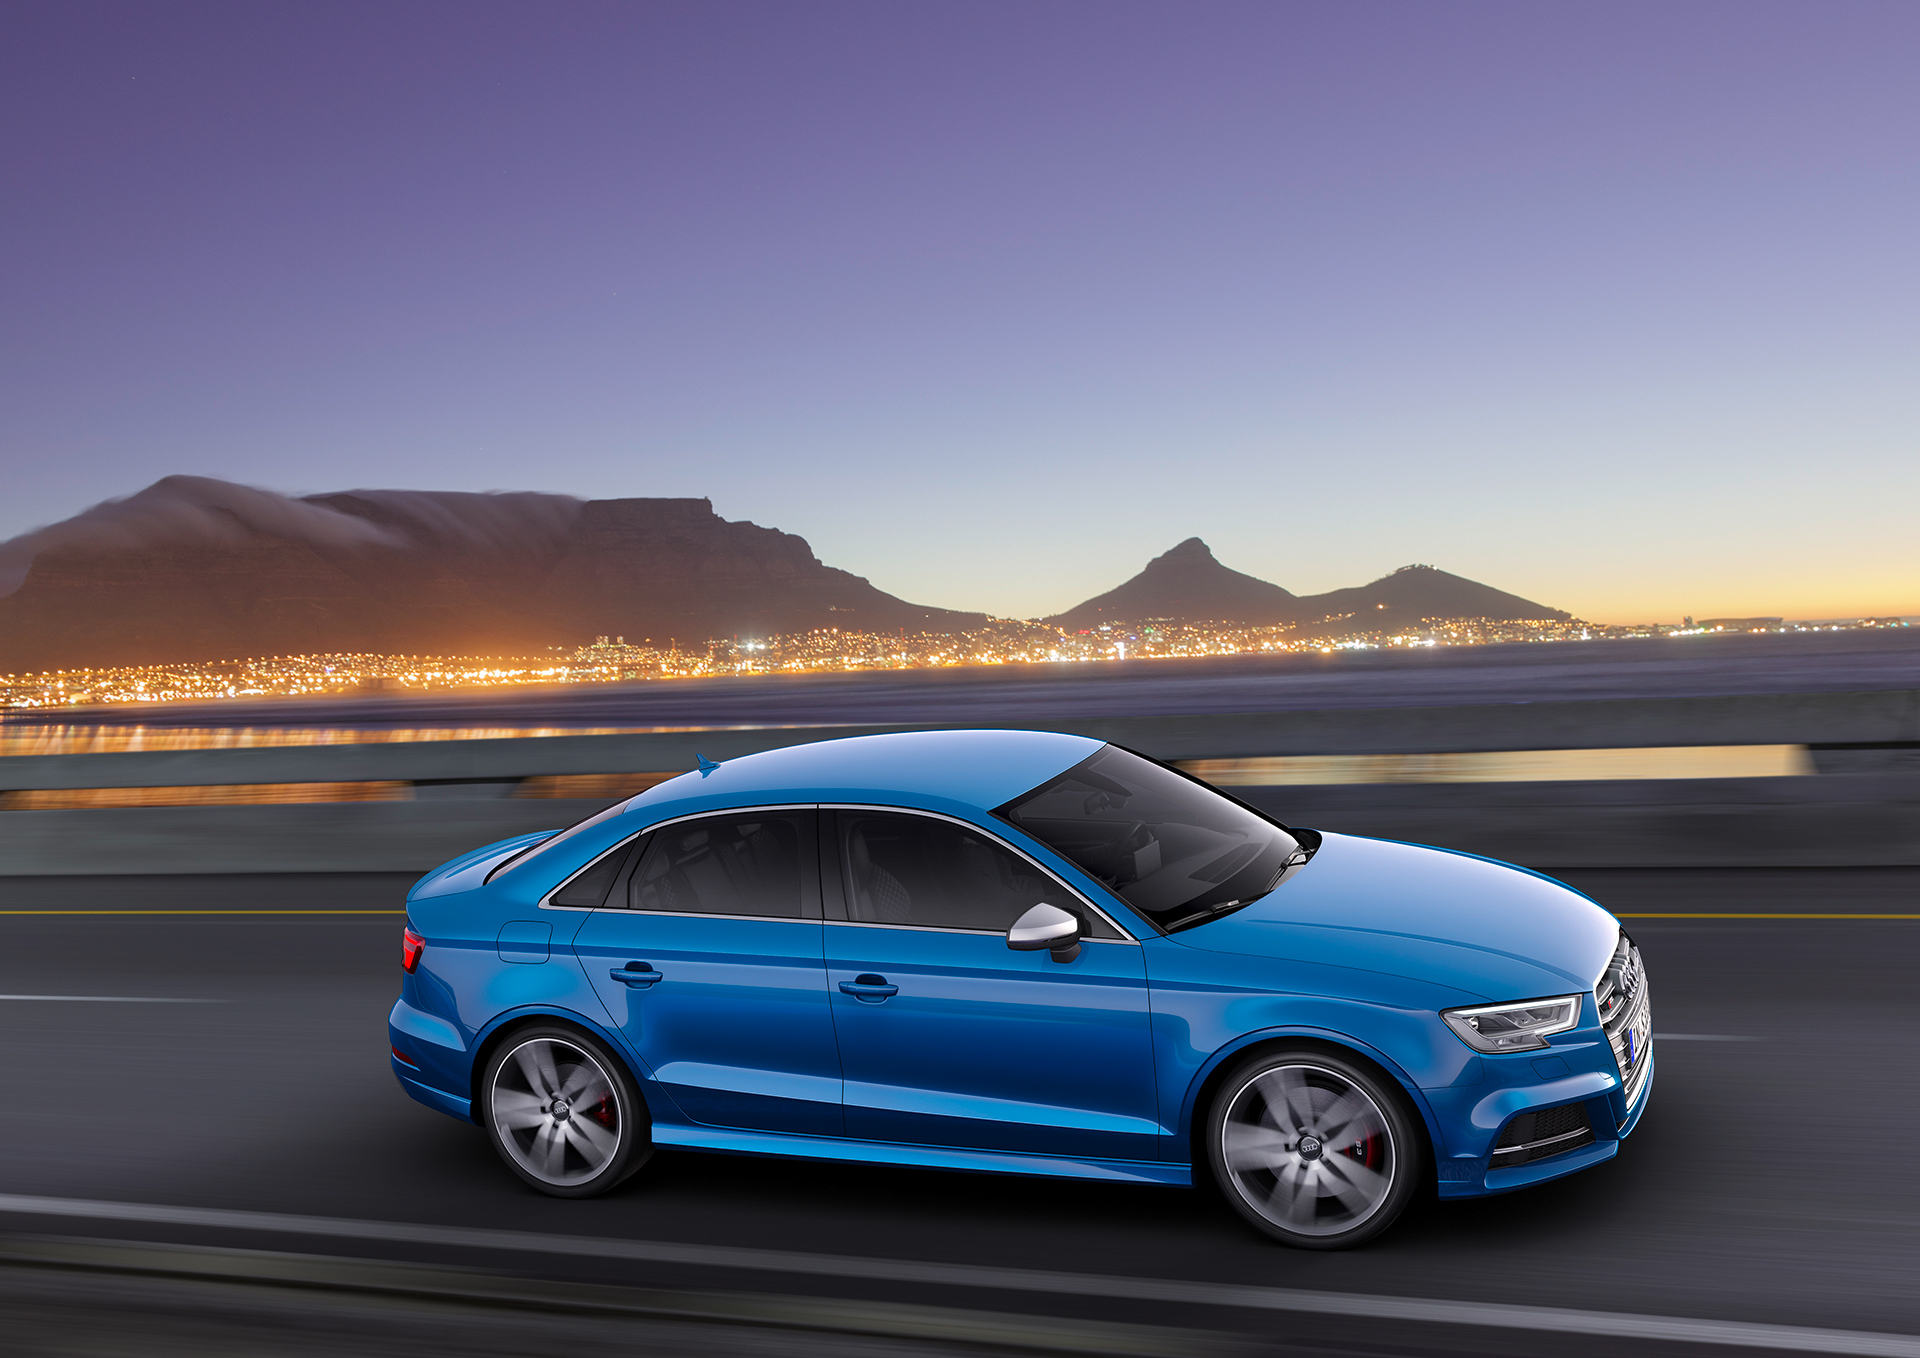 Audi S3 Sedan - 2016 - side-face / profil